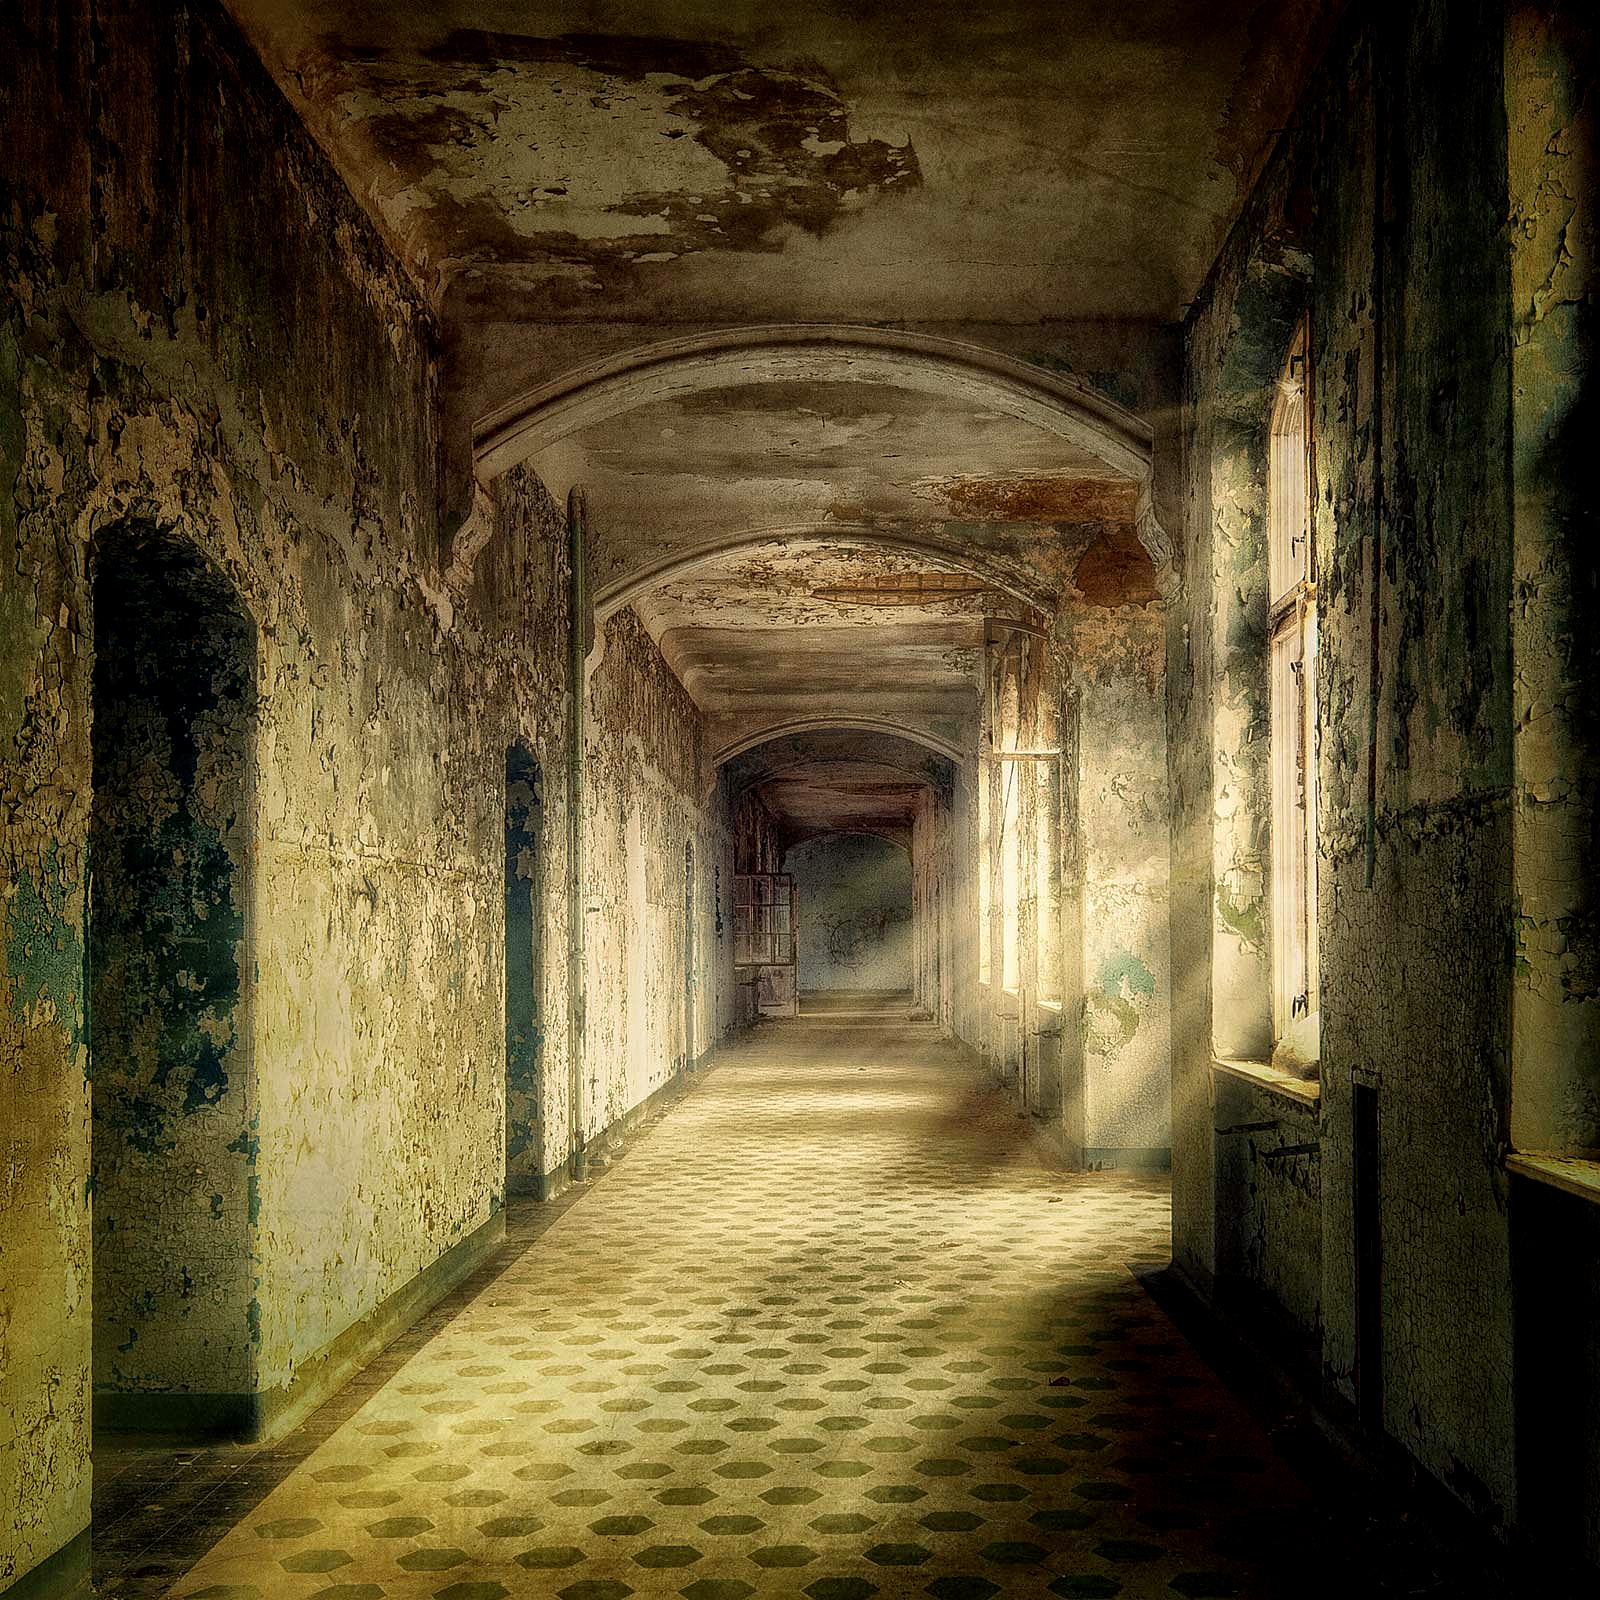 Hallway of Dreams by Markus Studtmann